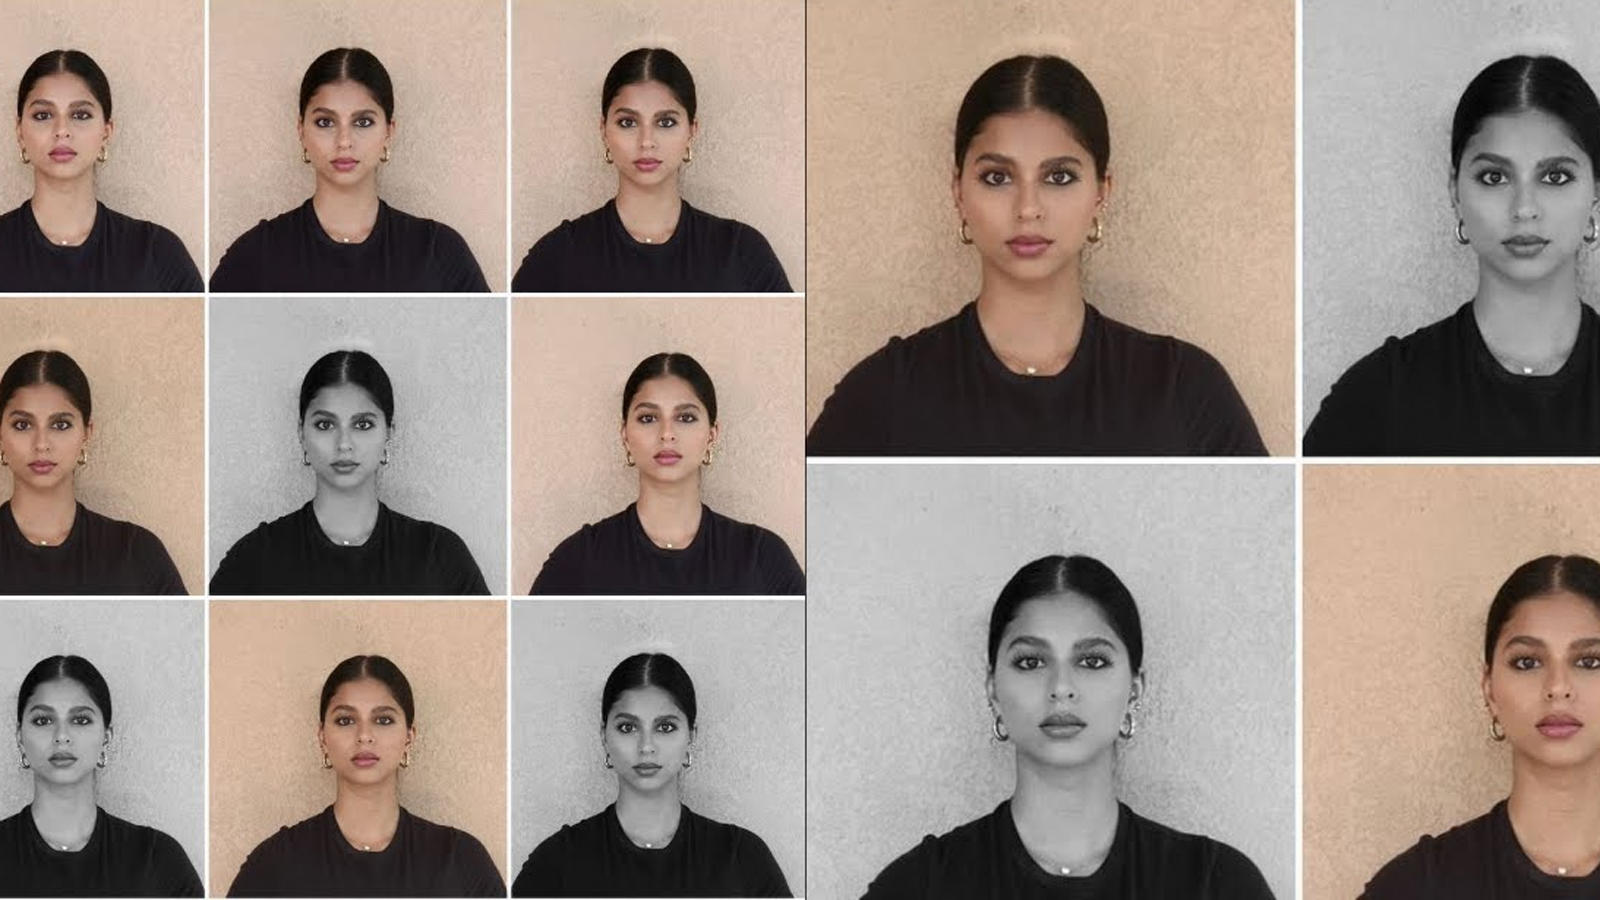 suhana-khan-reveals-her-many-moods-in-the-latest-post-asks-fans-to-pick-a-personality